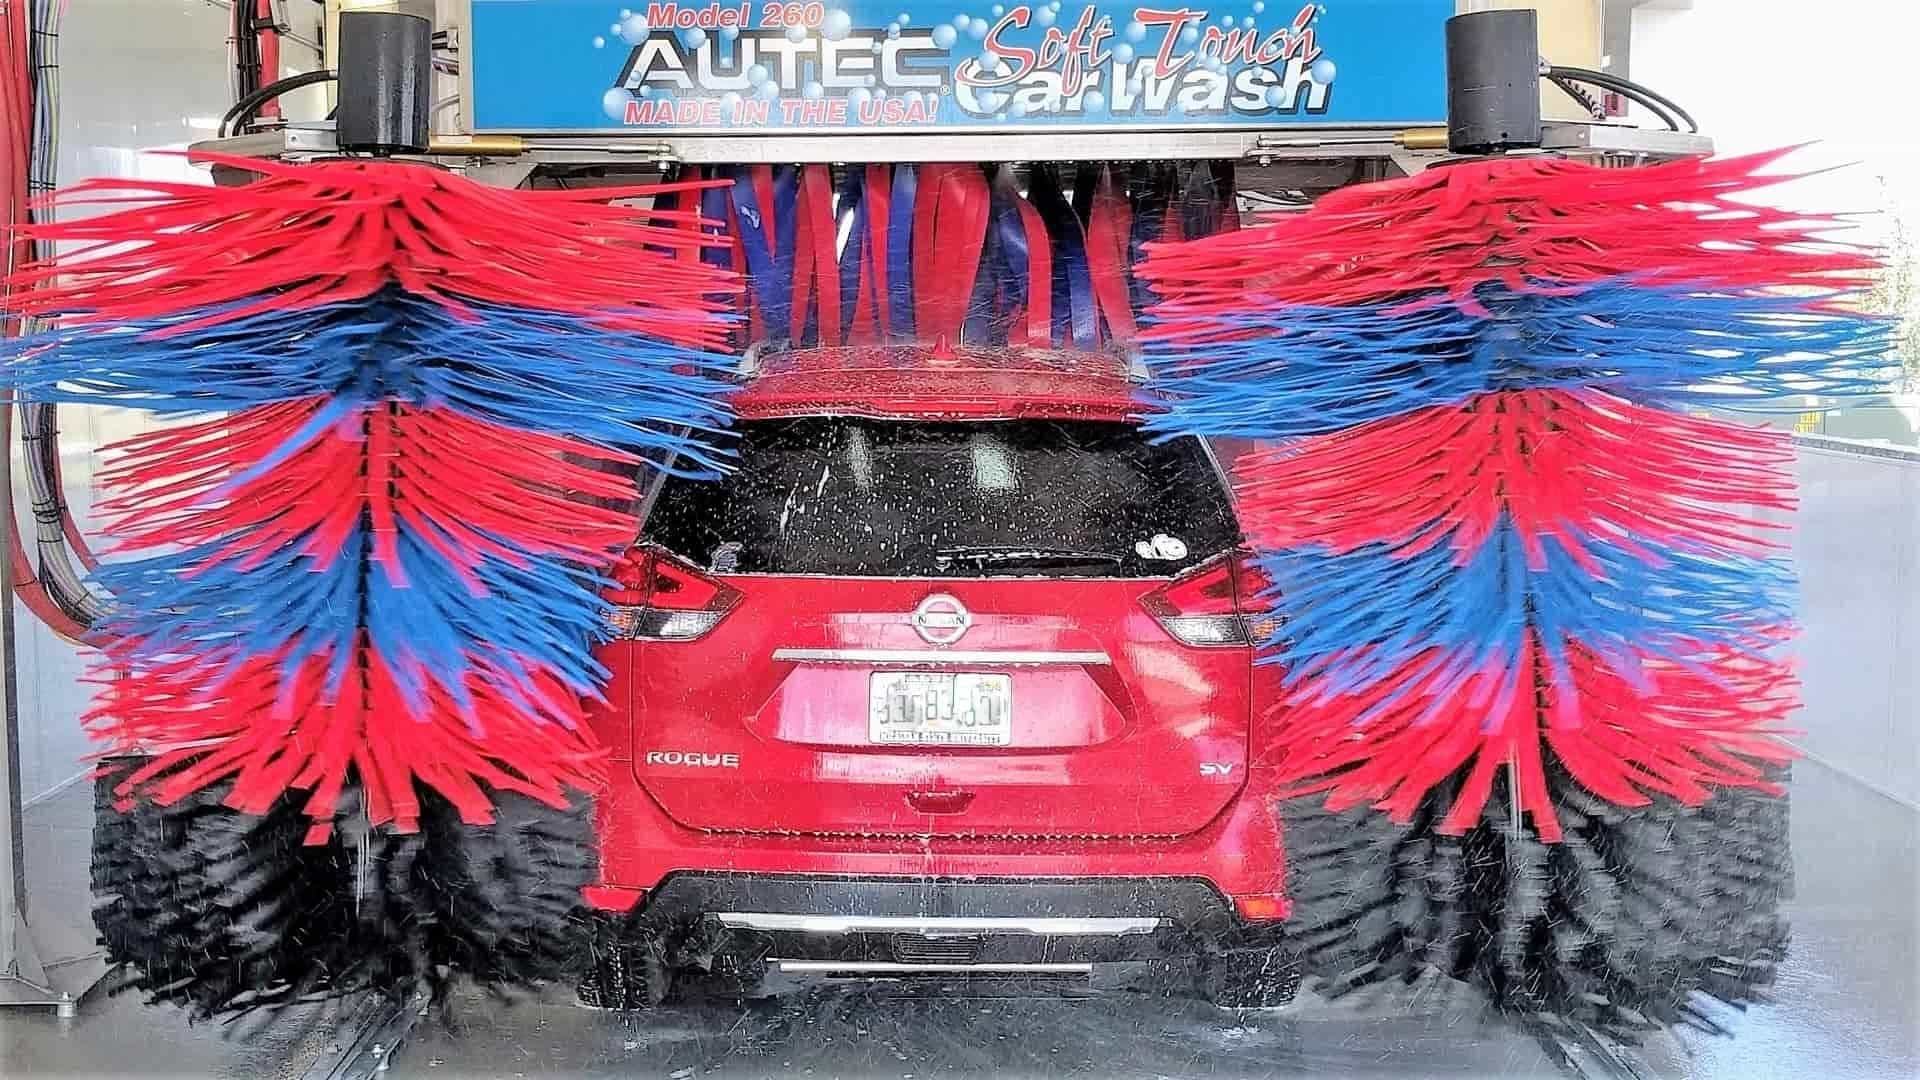 Self Service Car Wash Fort Worth